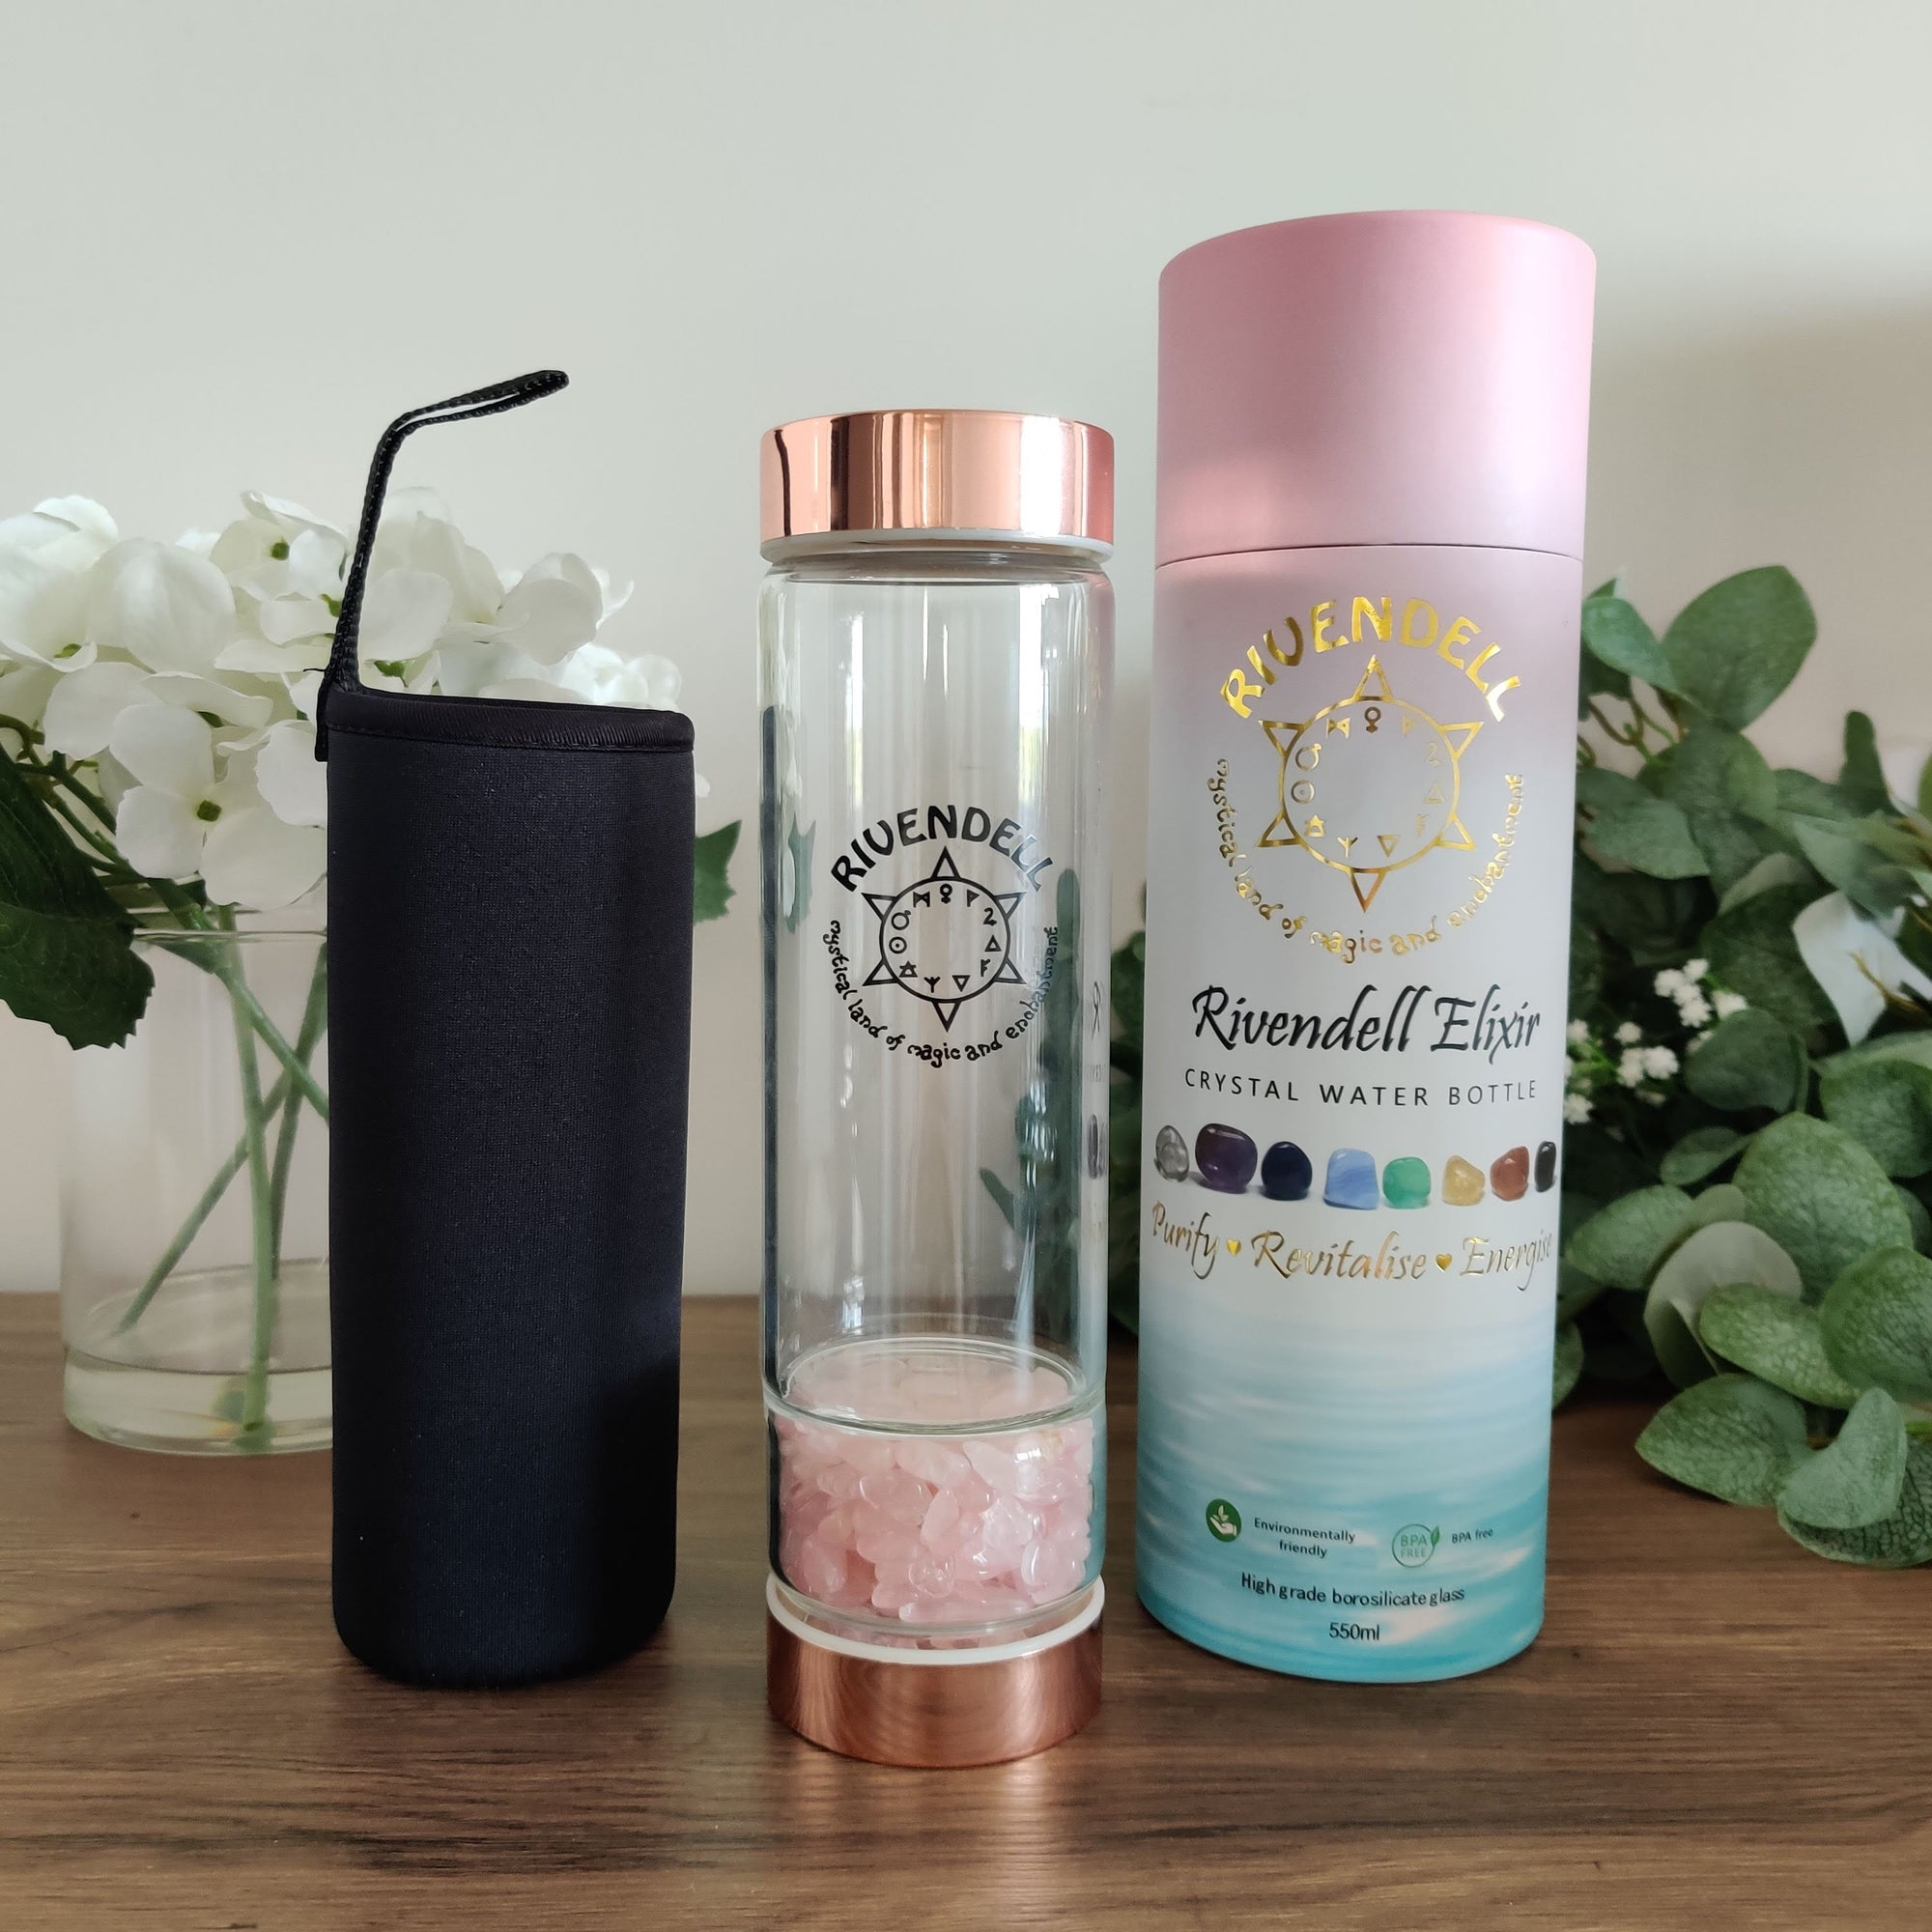 Rivendell Elixir: Rose Quartz Crystal Water Bottle - Rivendell Shop NZ